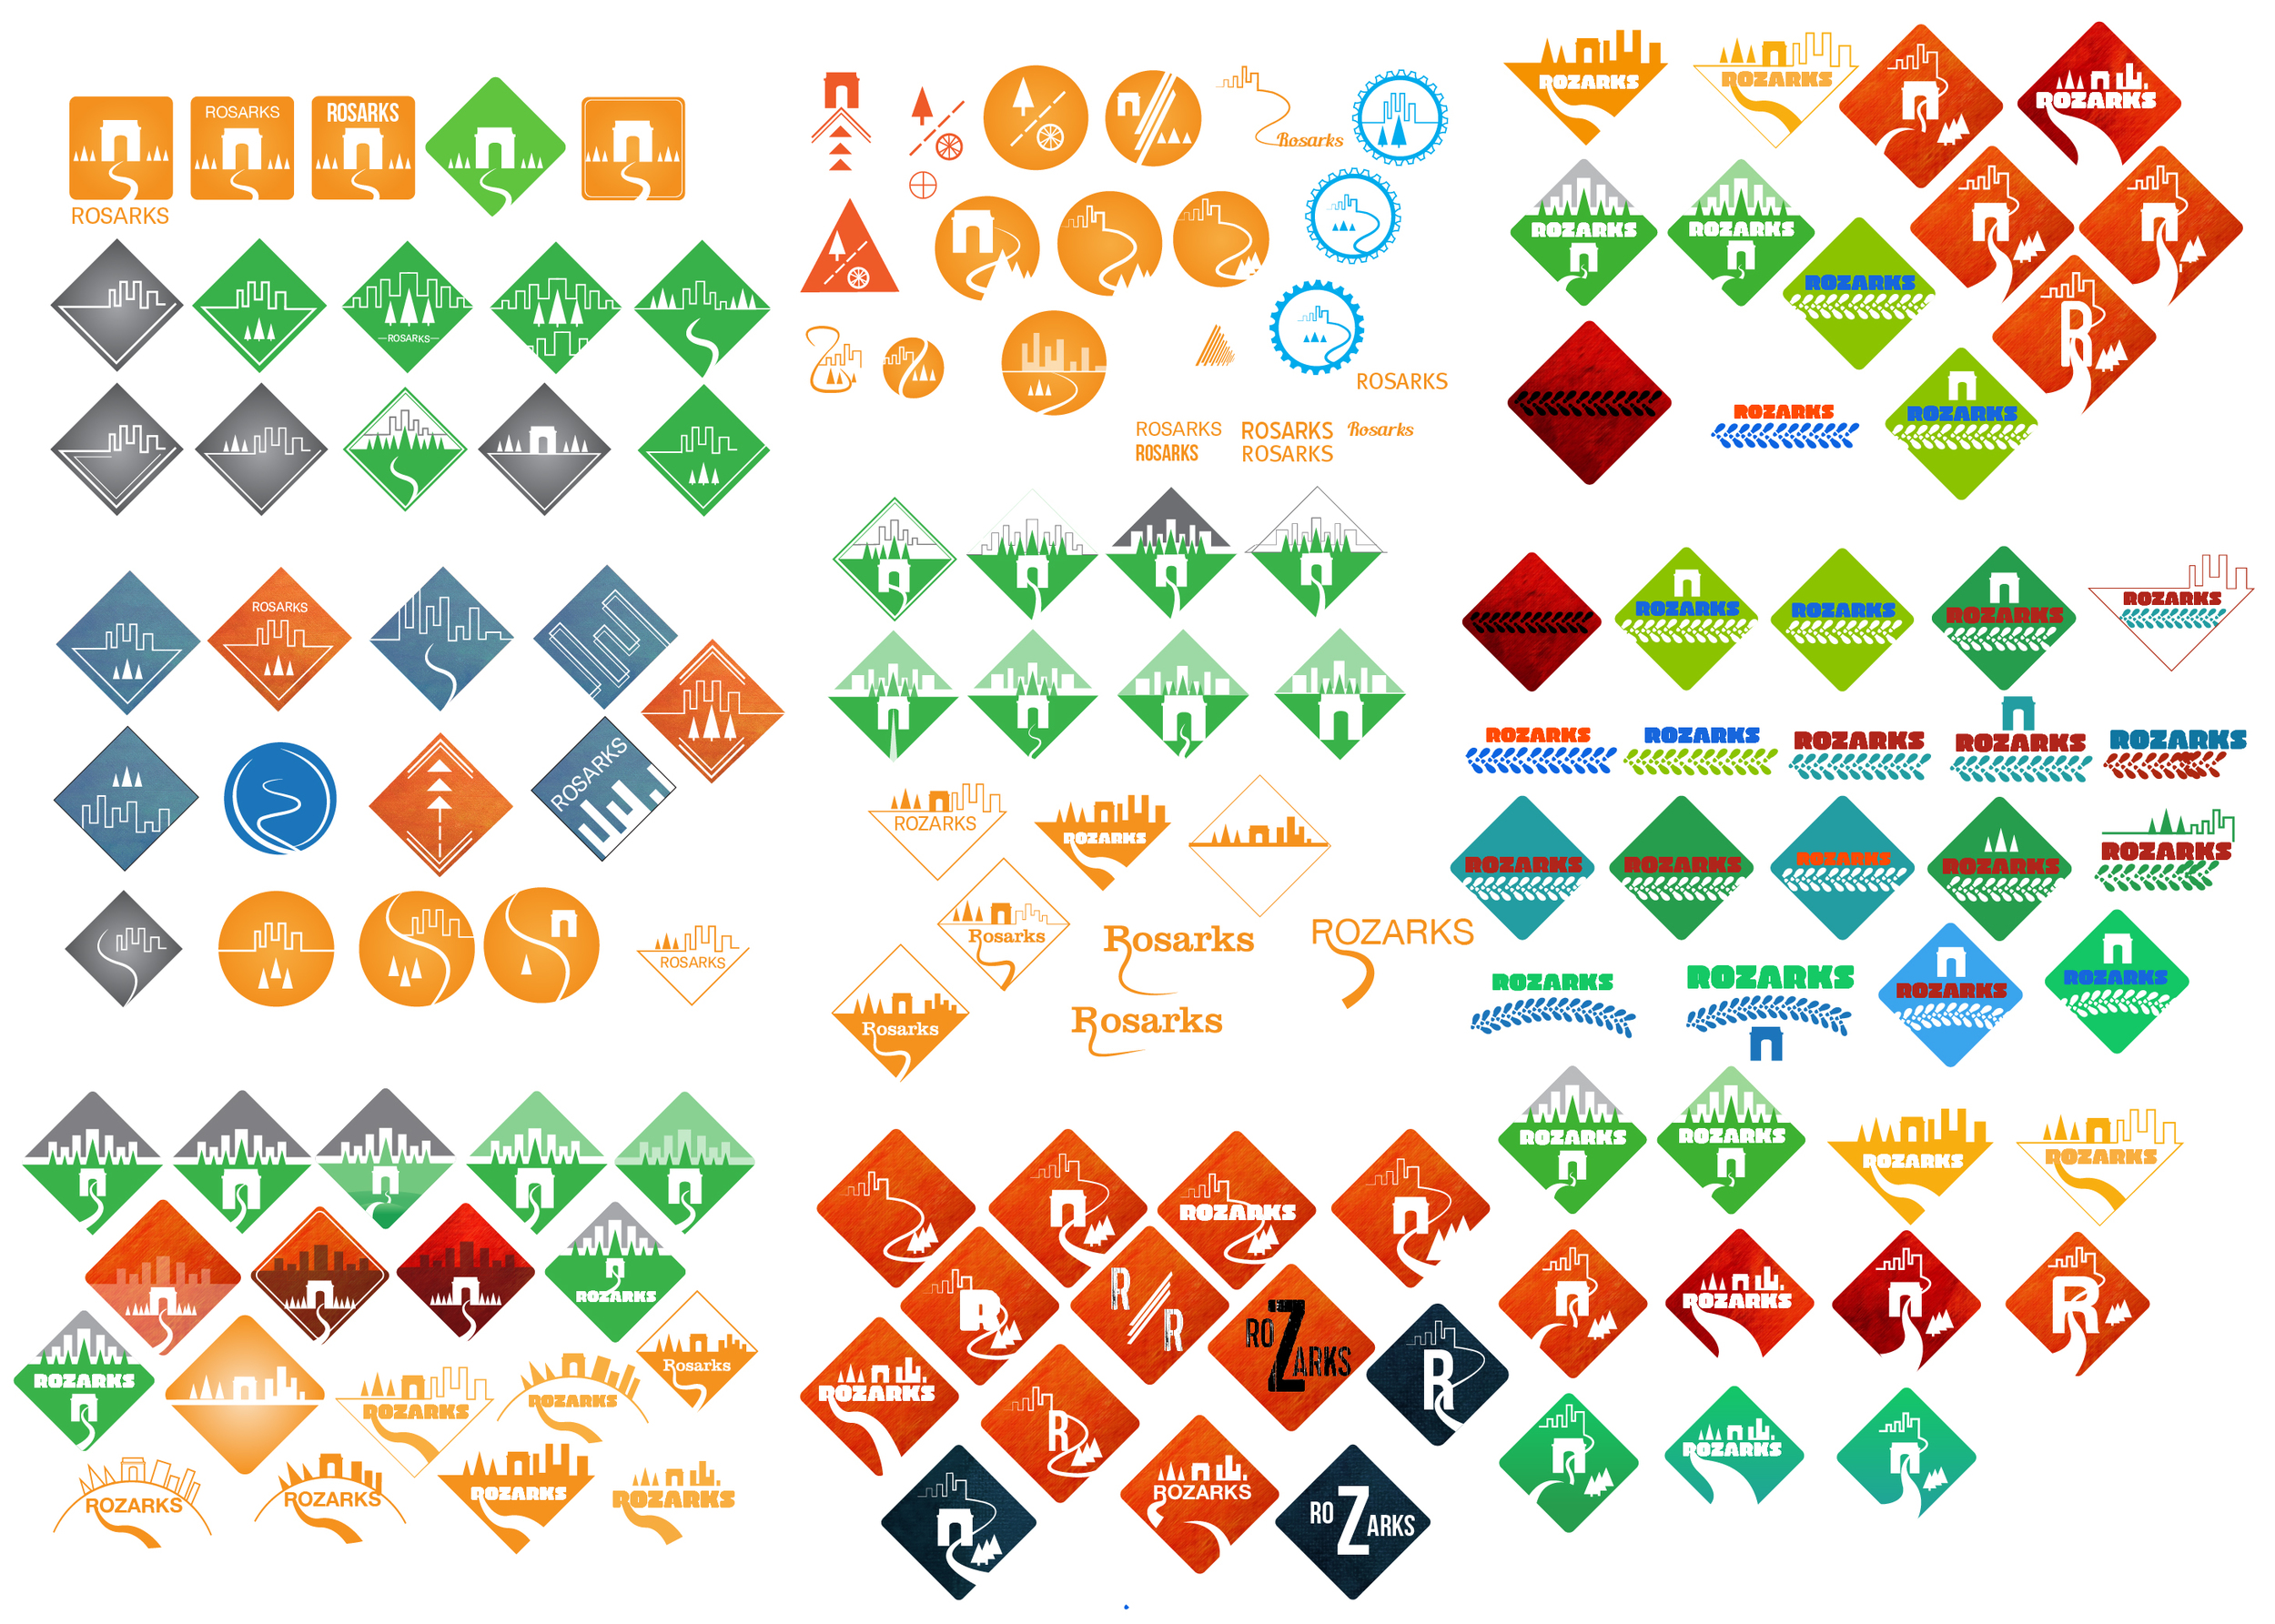 Here are all of the iterations I did over time to try to get ideas, colors, and typography down on the new logo. I definitely wanted to include the city, arch, and the trails to represent that these are urban trails. I liked going for a diamond like shape to represent a park sign.